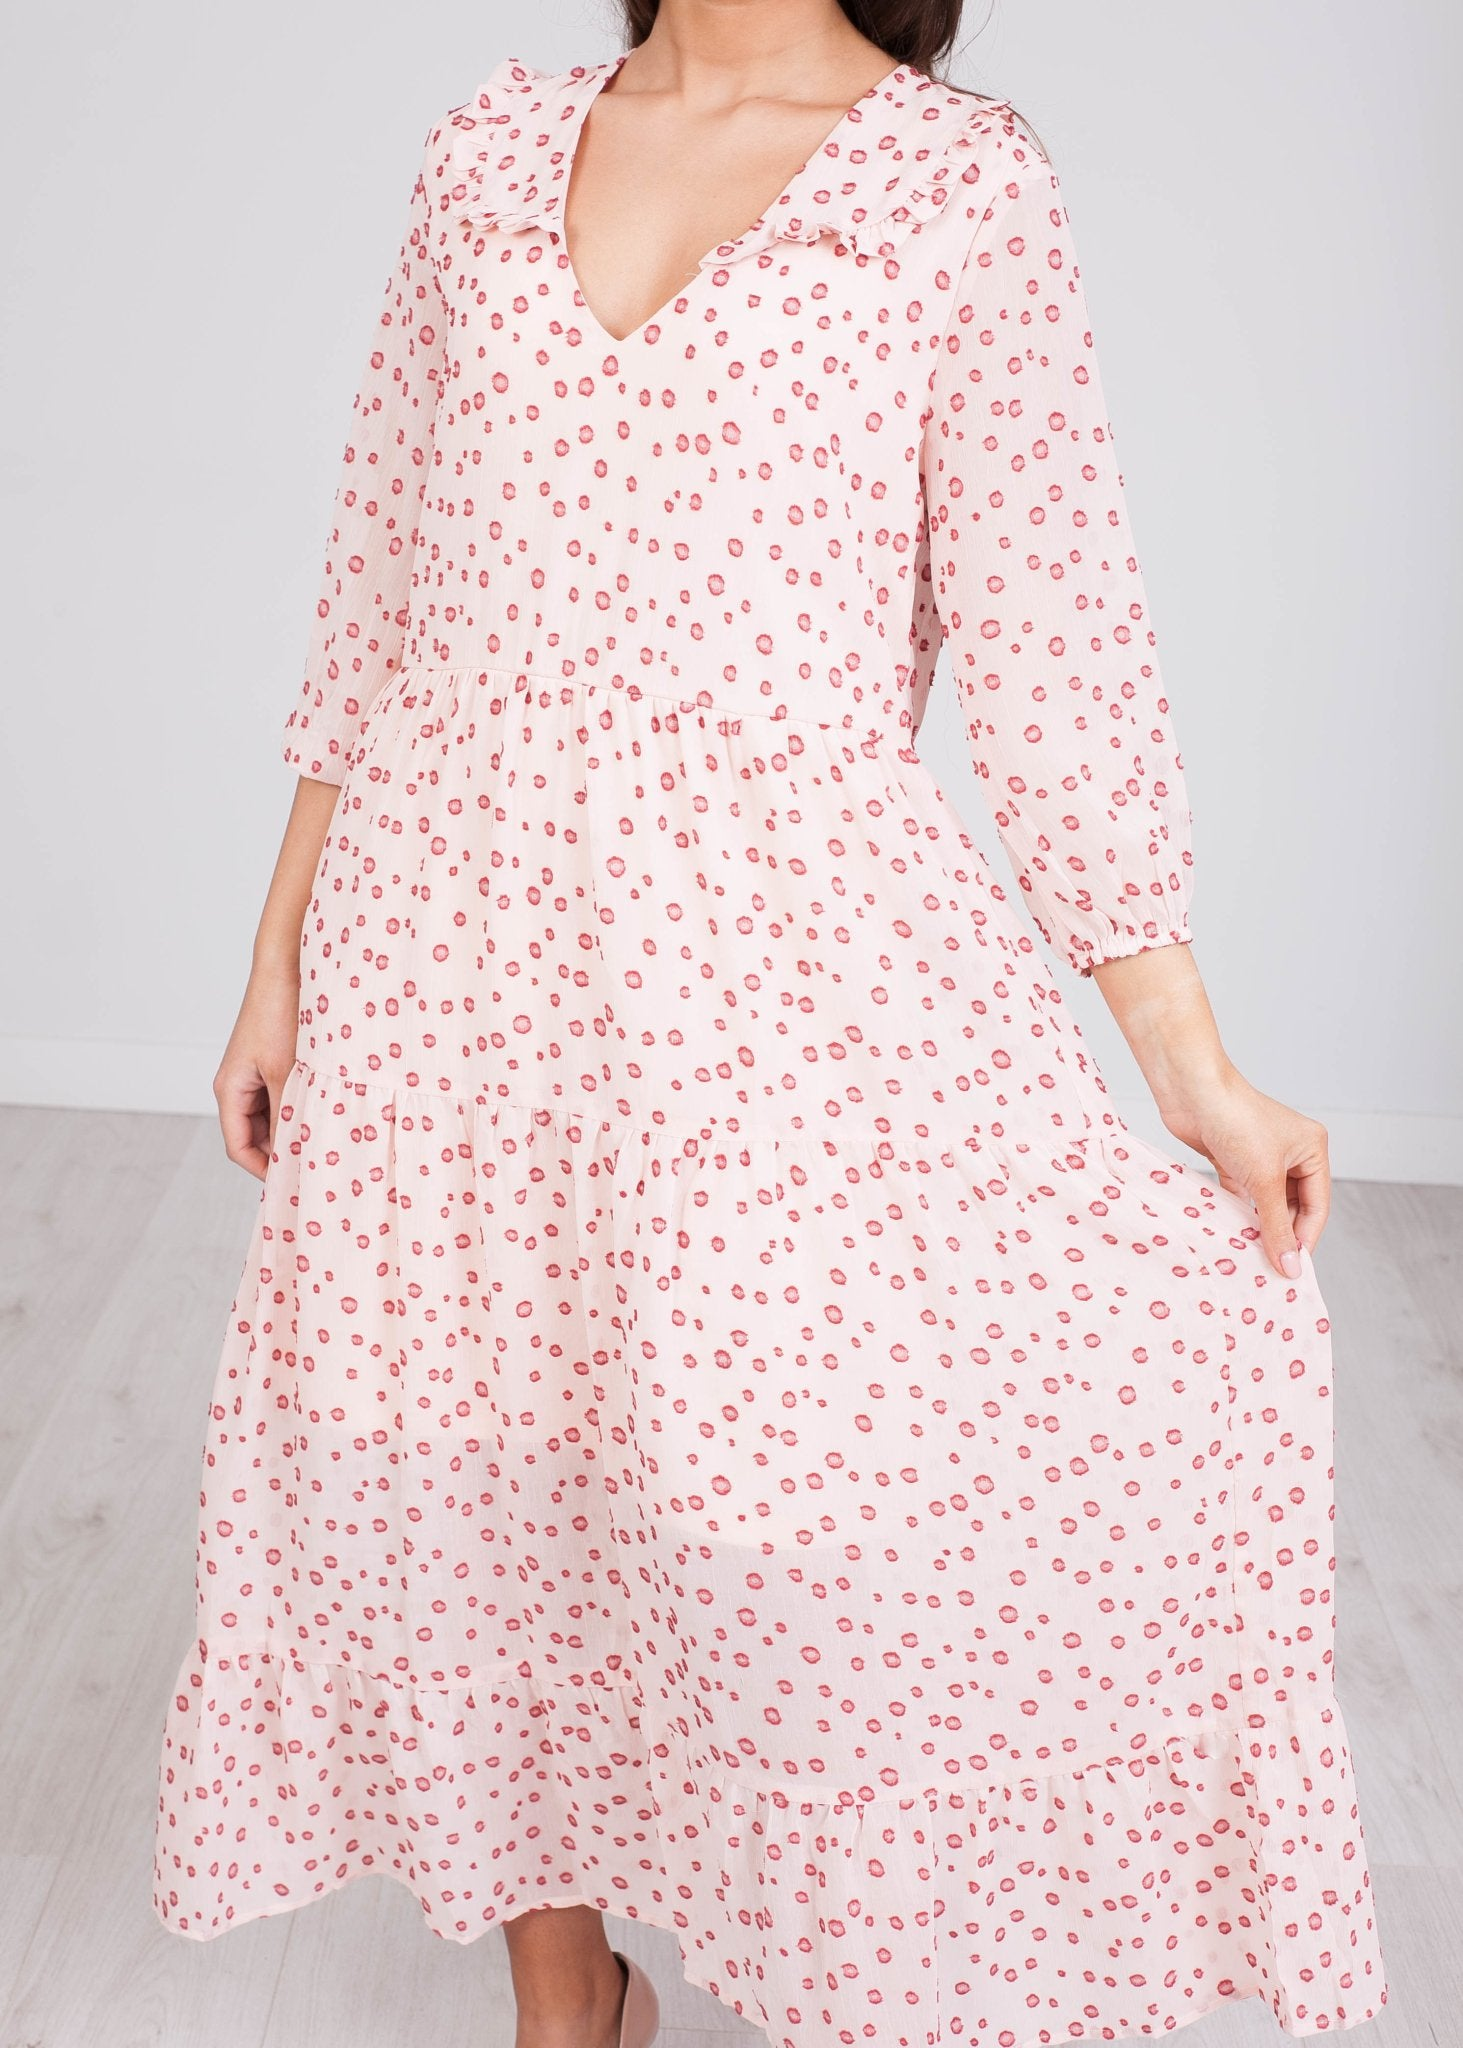 Cherie Blush Polka Dot Midi Dress - The Walk in Wardrobe